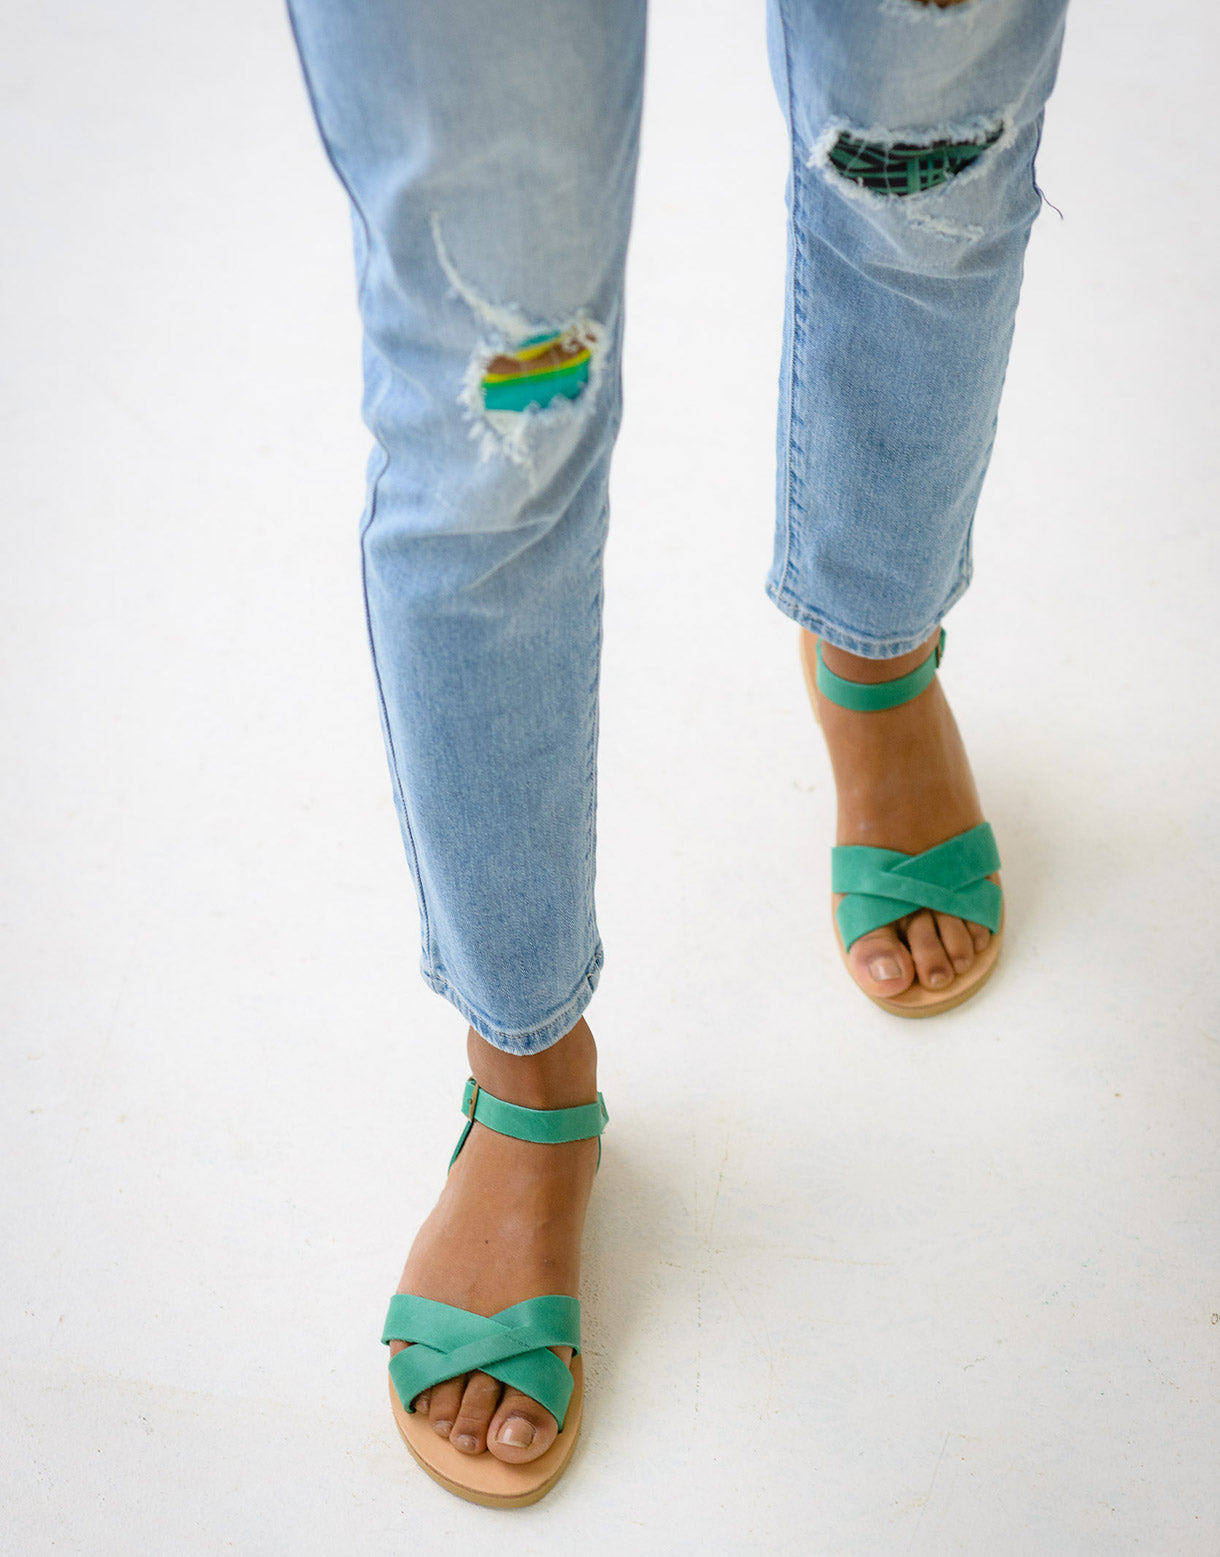 Erato Sandals in Light Green